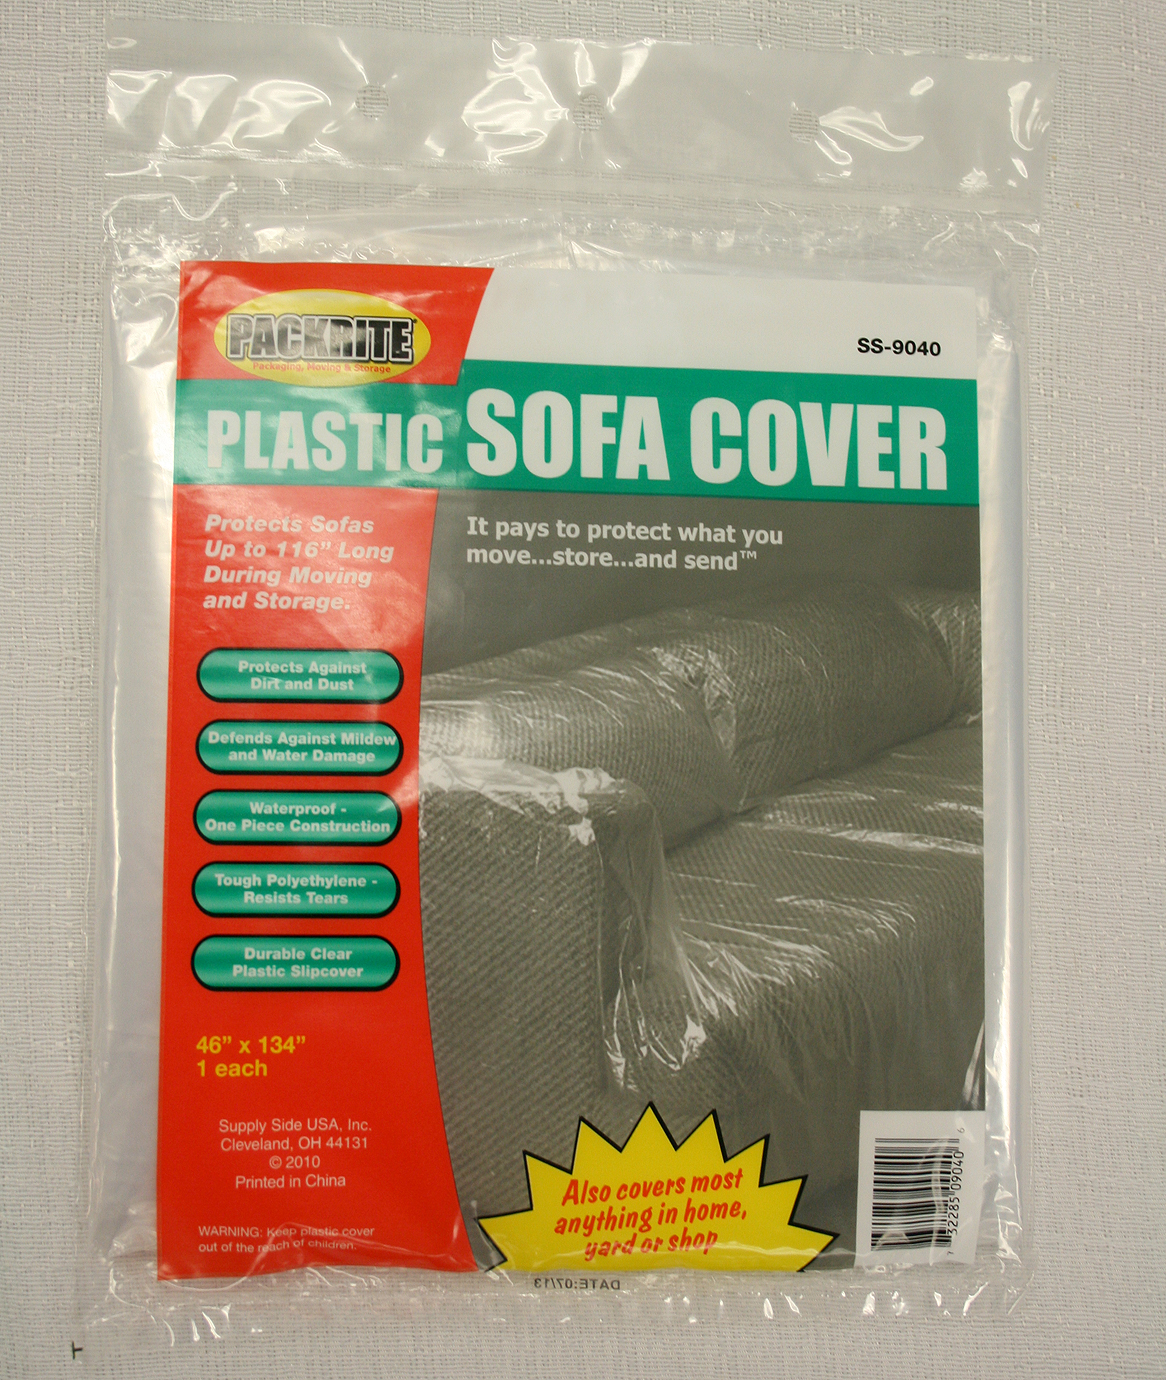 Plastic Sofa Cover Iowa City Cedar Rapids Party And